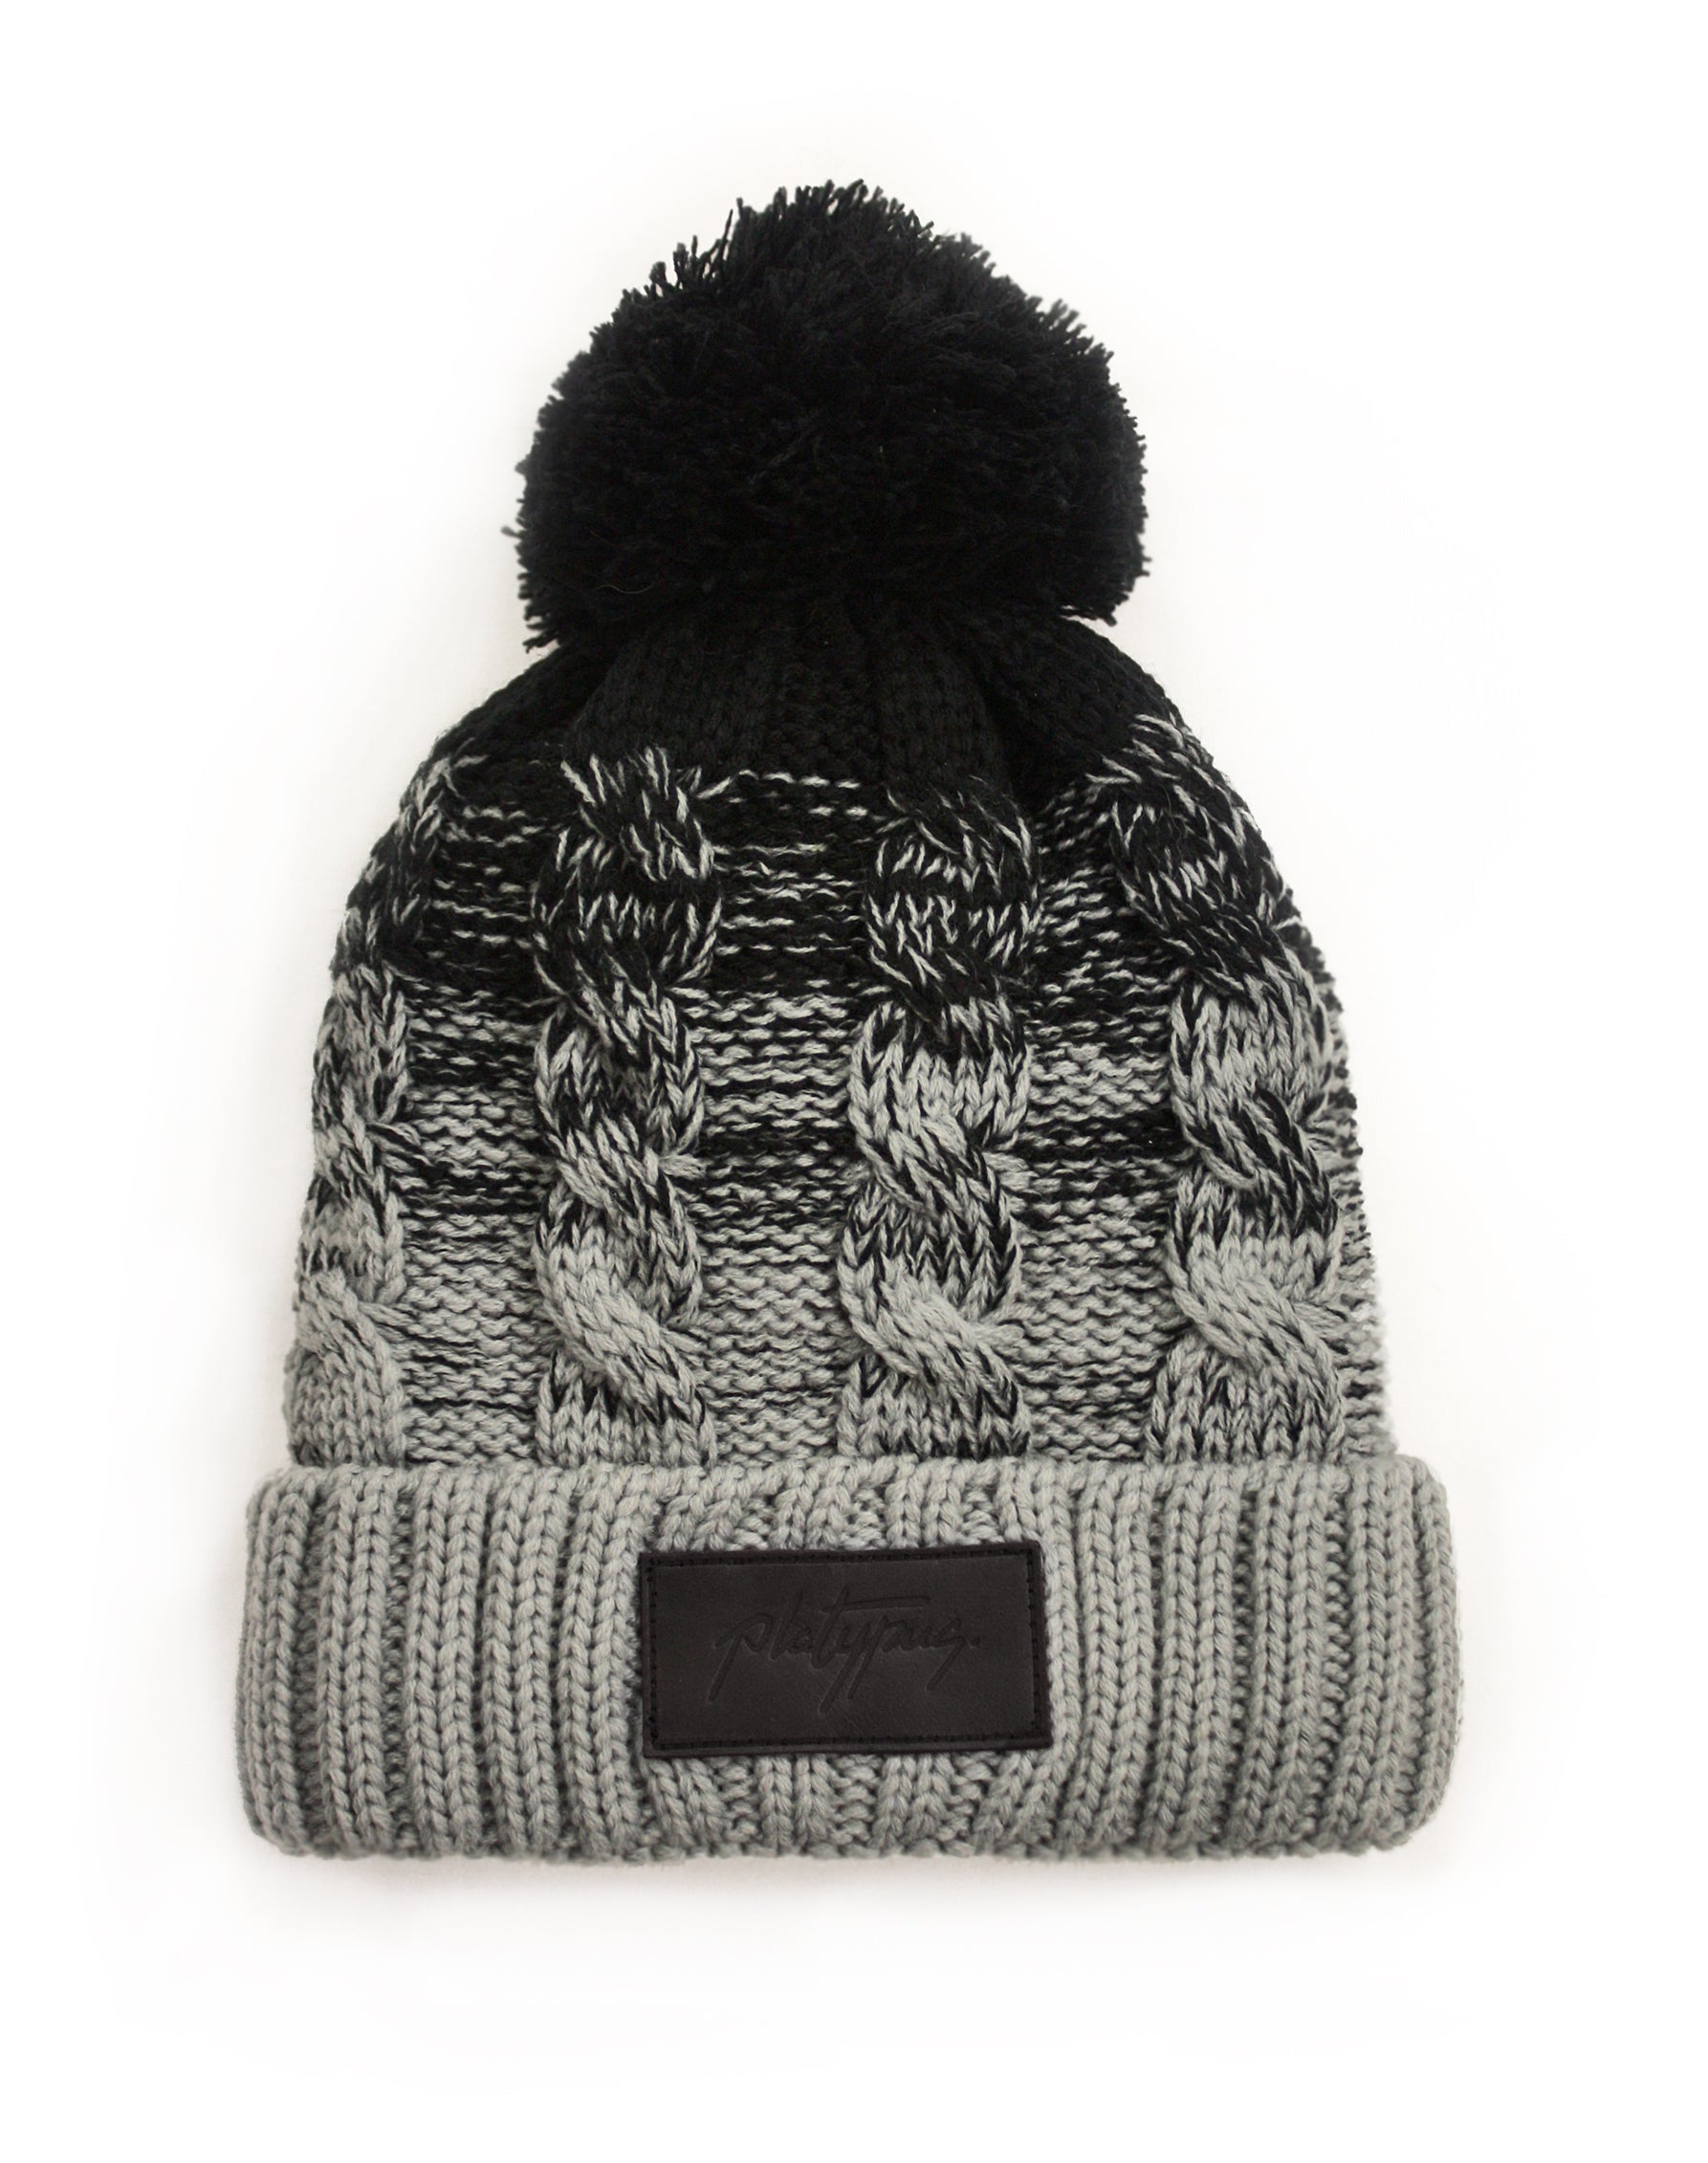 Leather Patch Black   Grey Ombre Knitted Beanie Hat  bbc2e4239742